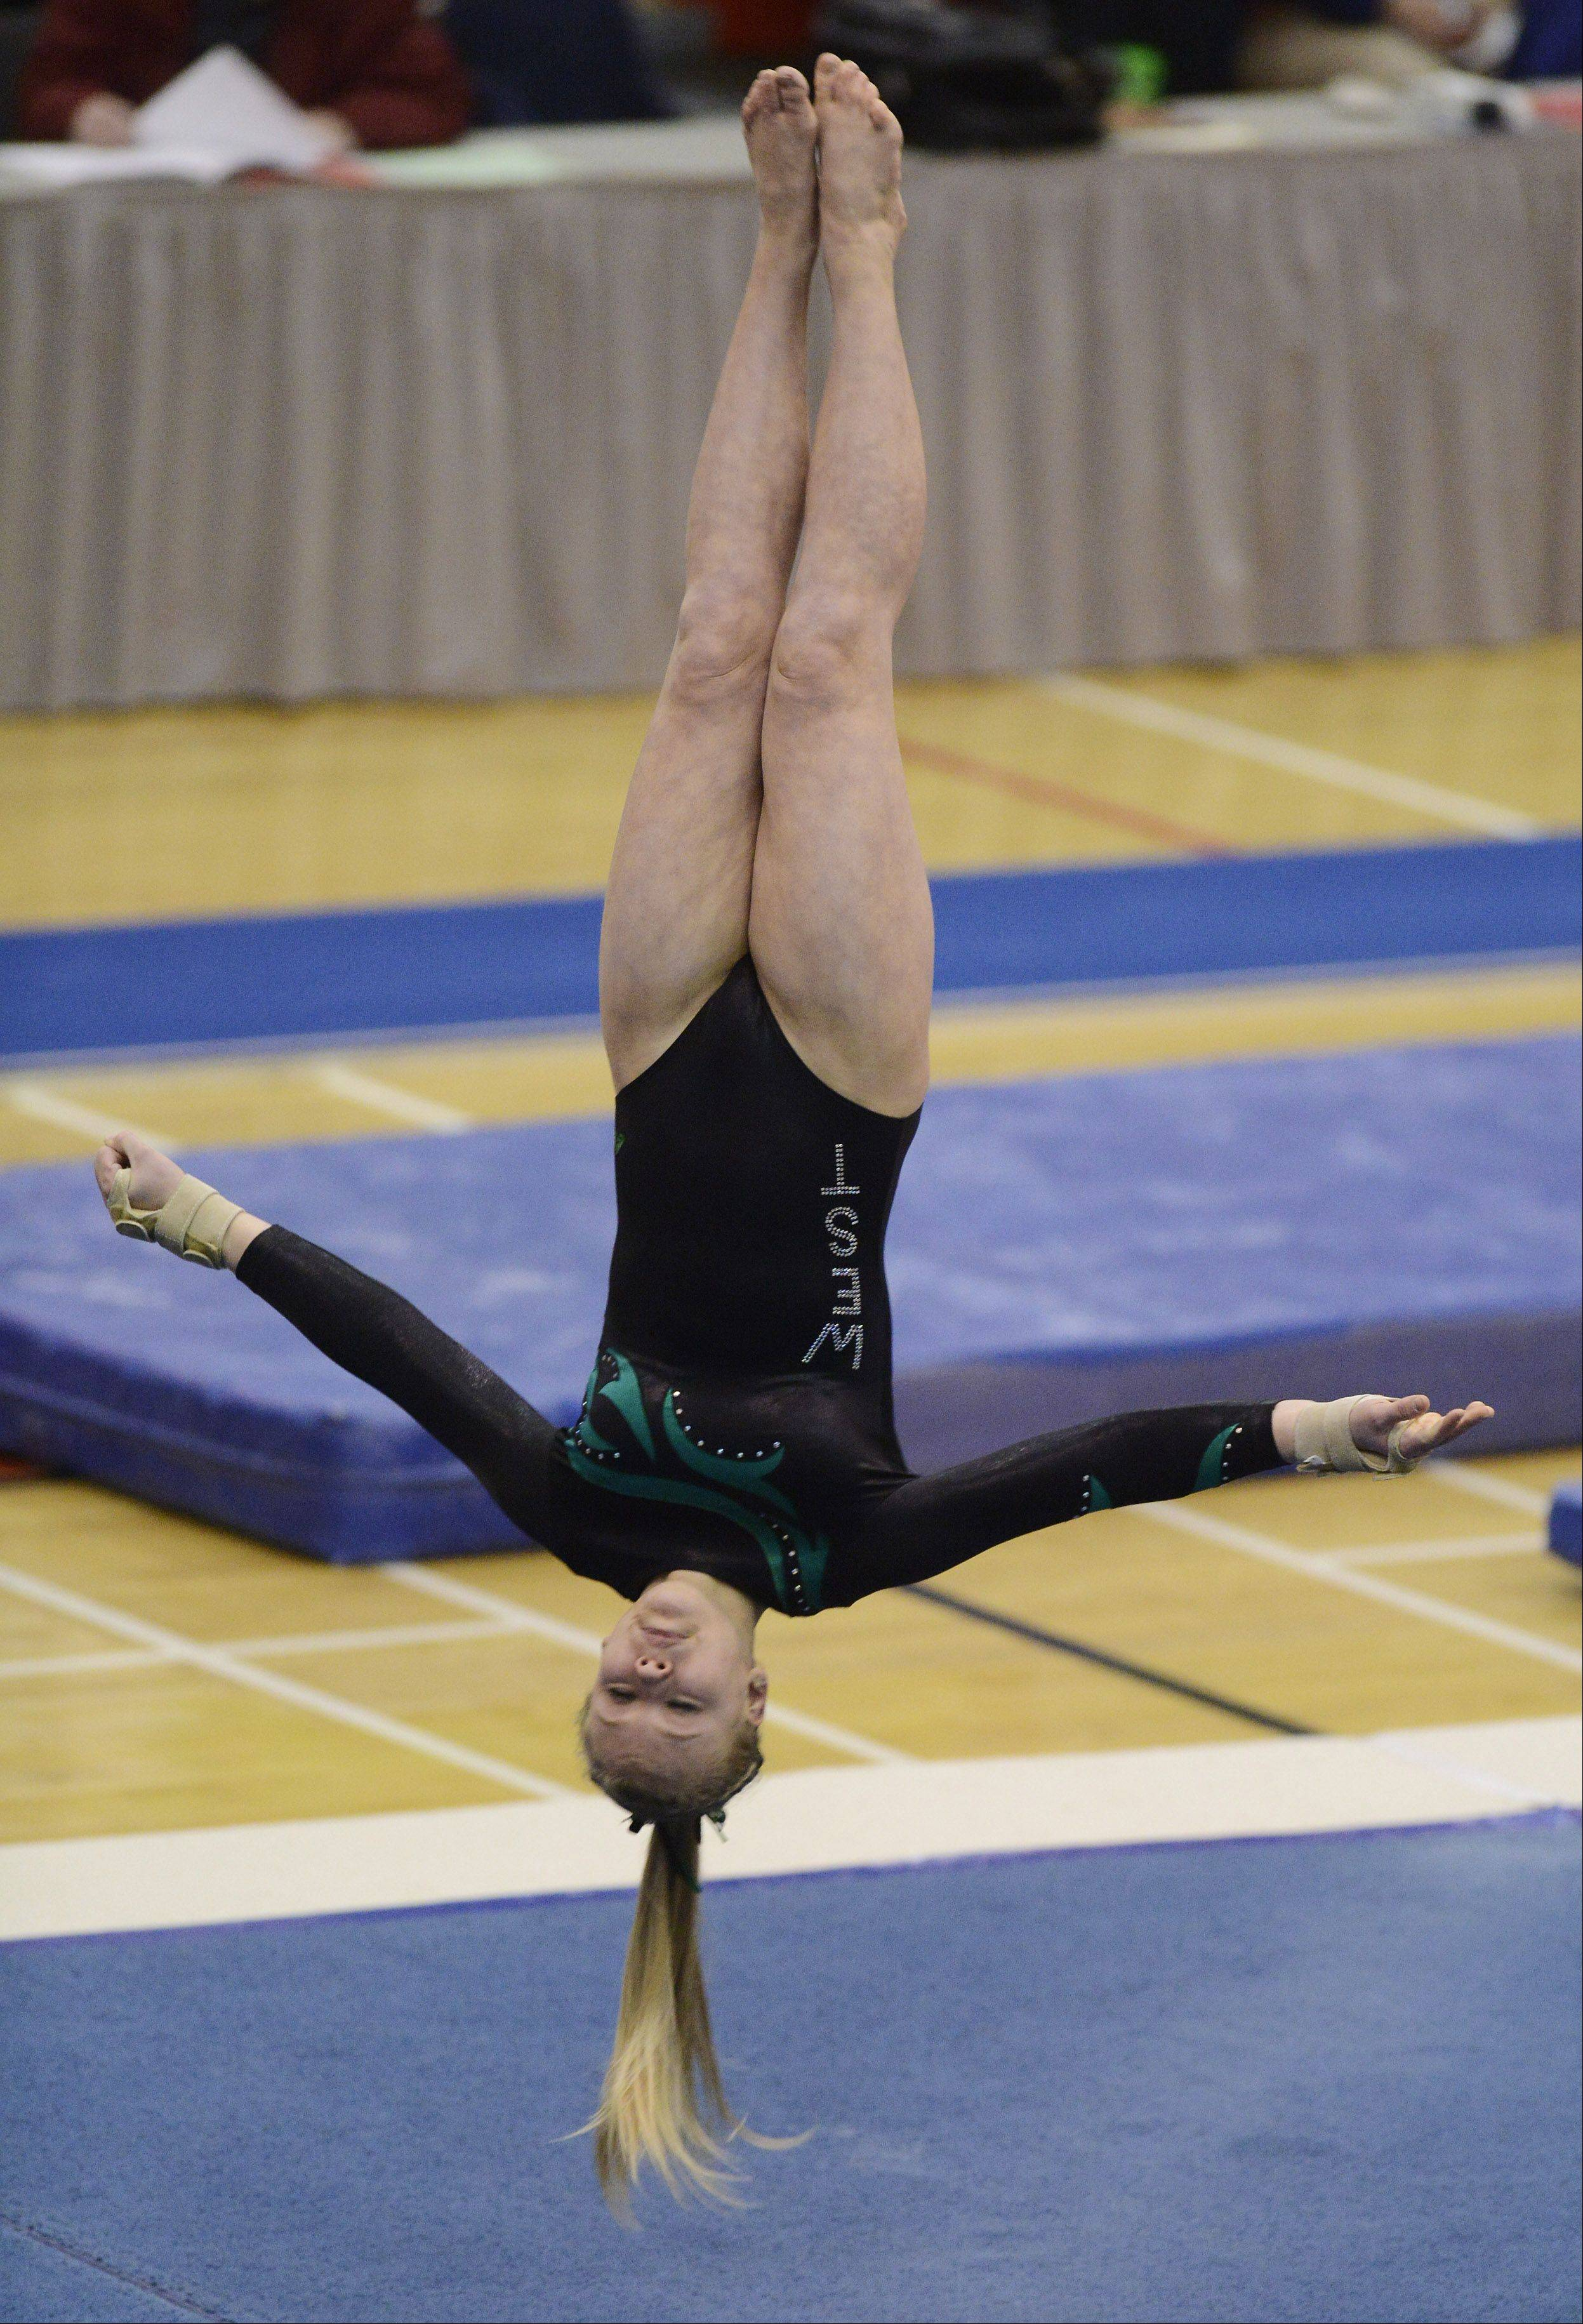 Glenbard West's Amber Broucek competes on the floor exercise during the girls state gymnastics preliminaries at Palatine High School Friday.